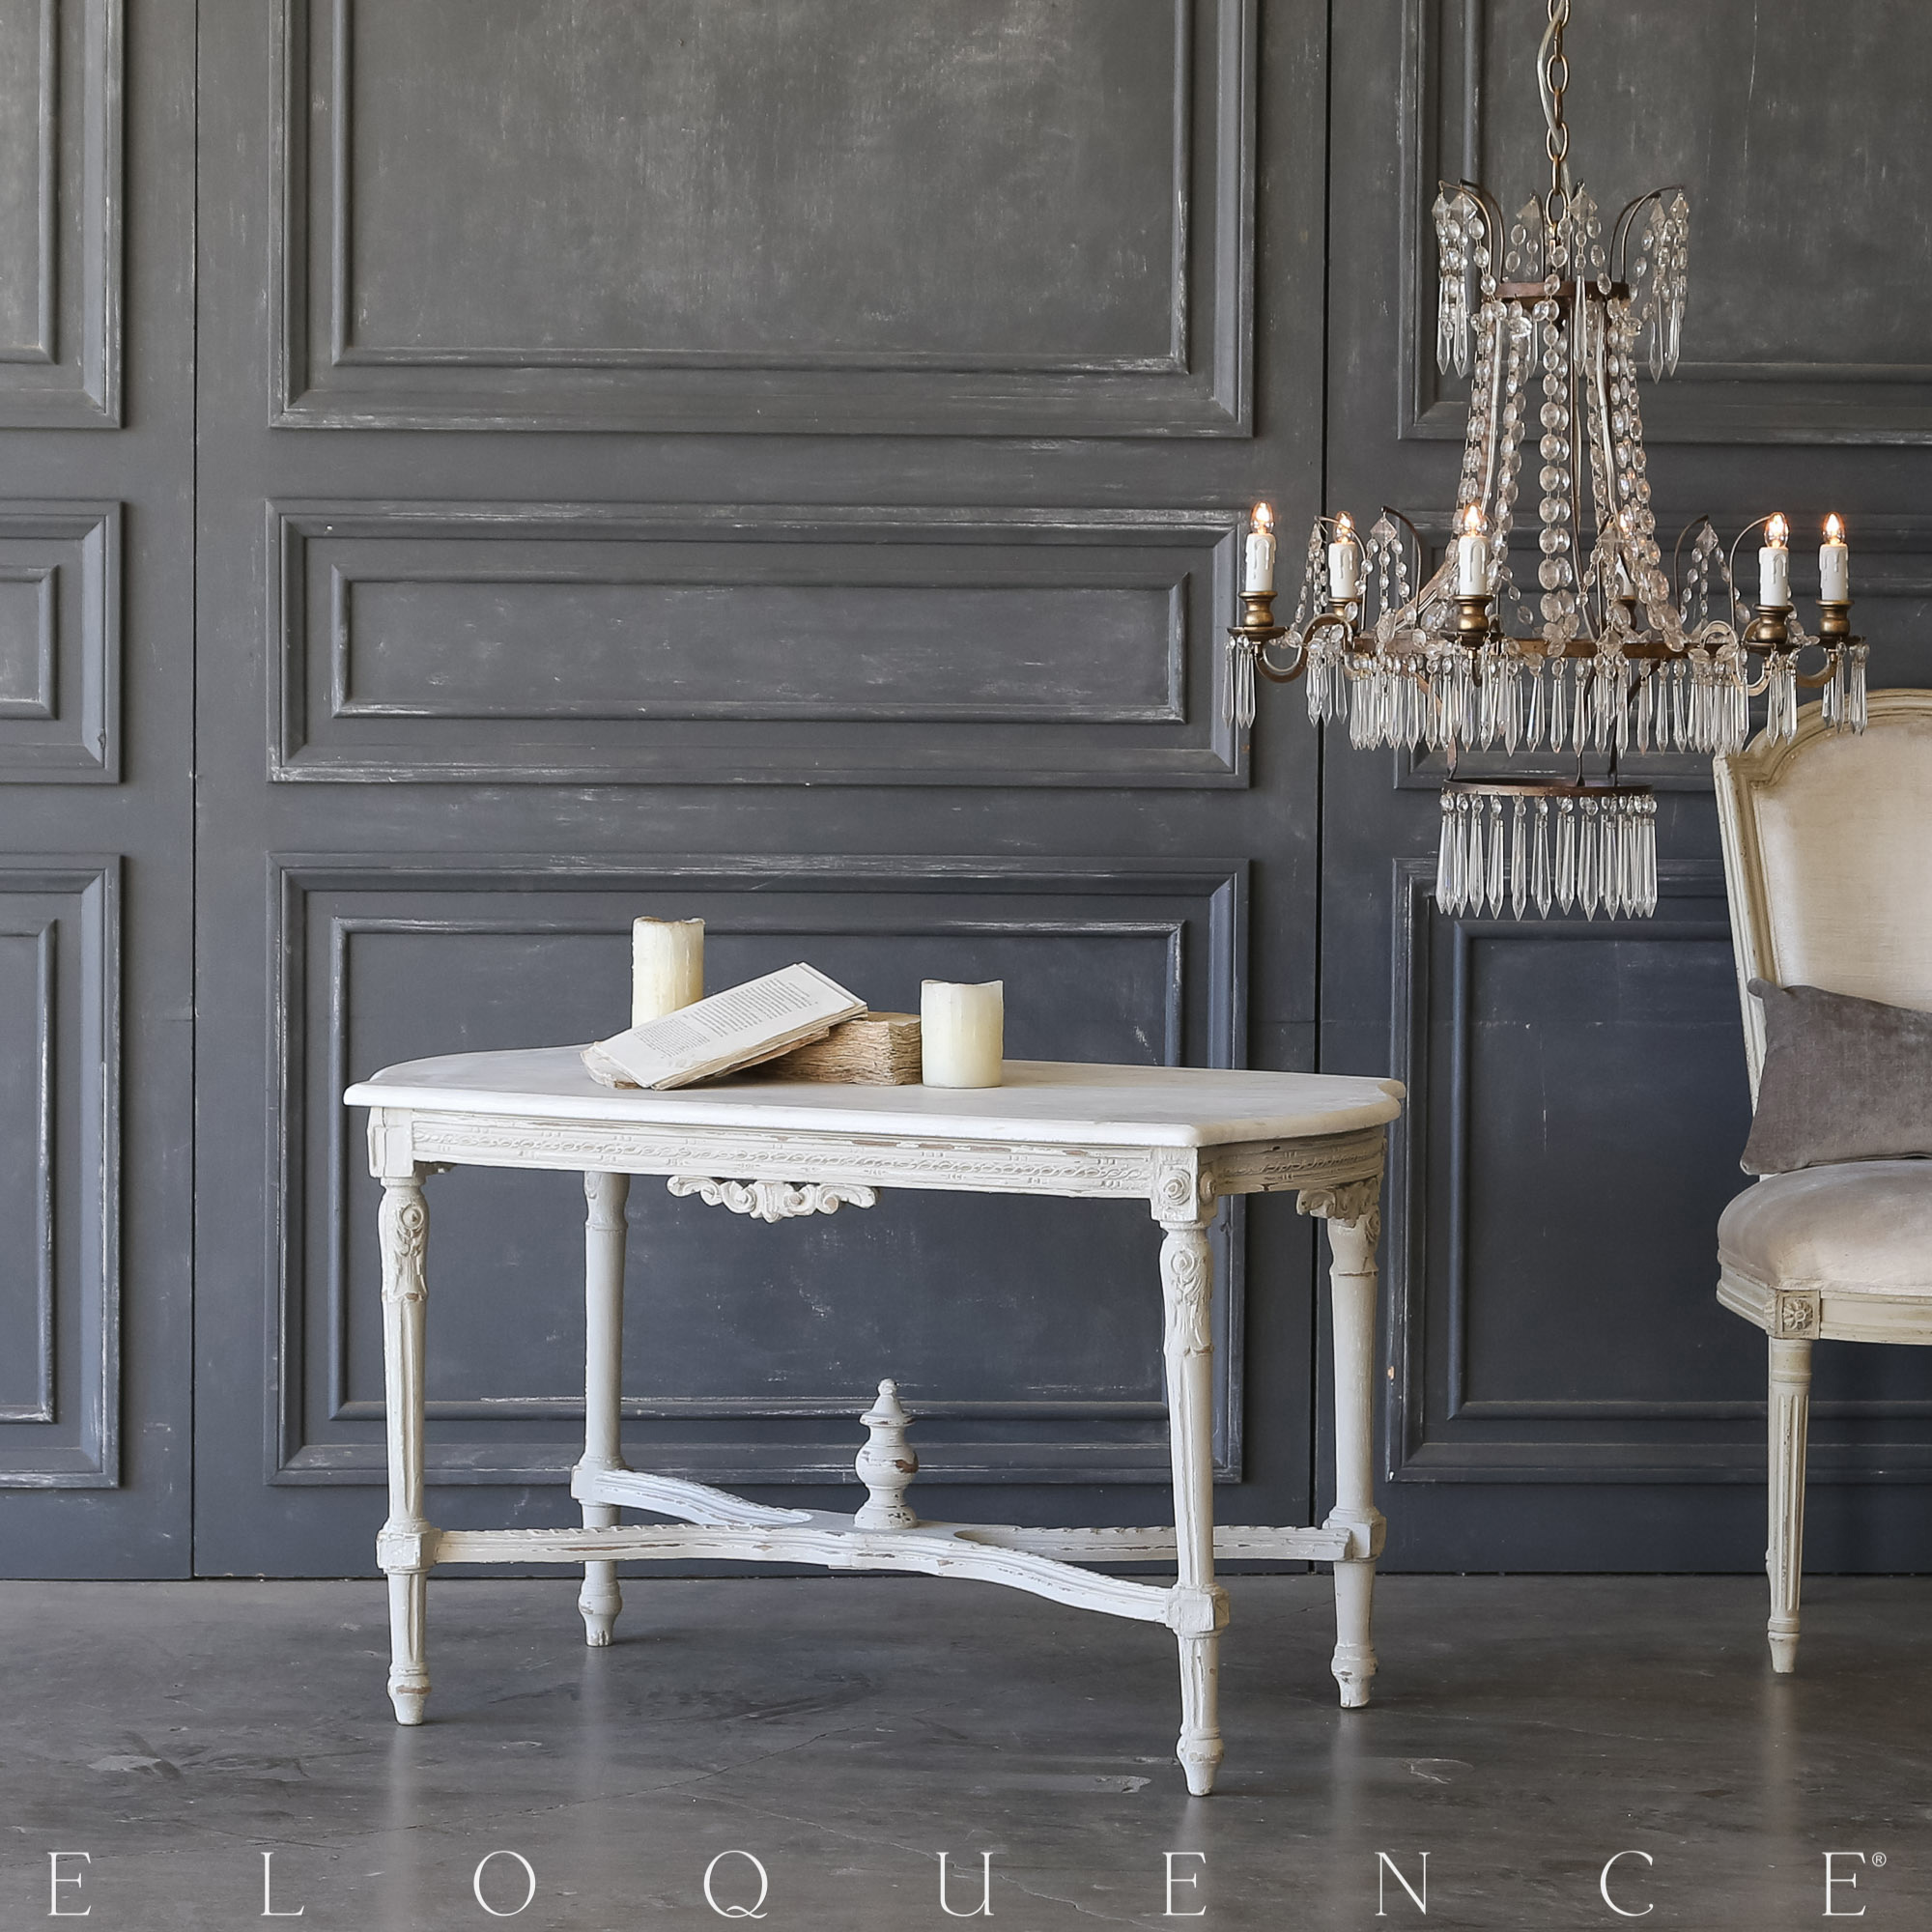 Eloquence® Vintage Powder Blue Coffee Table: 1940